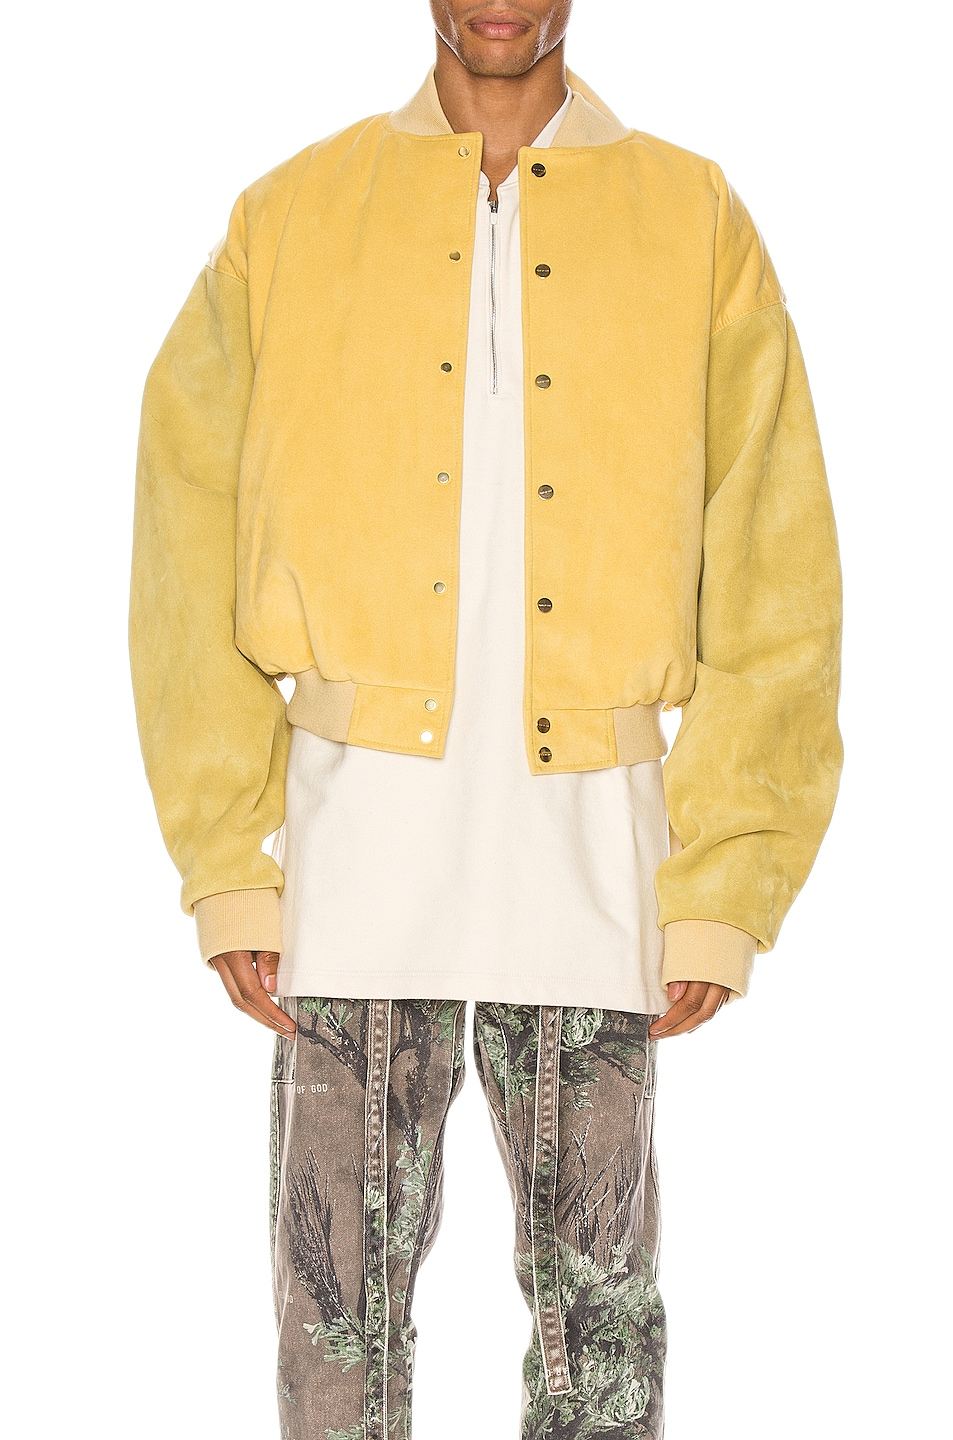 Image 2 of Fear of God 6th Collection Varsity Jacket in Garden Glove Yellow